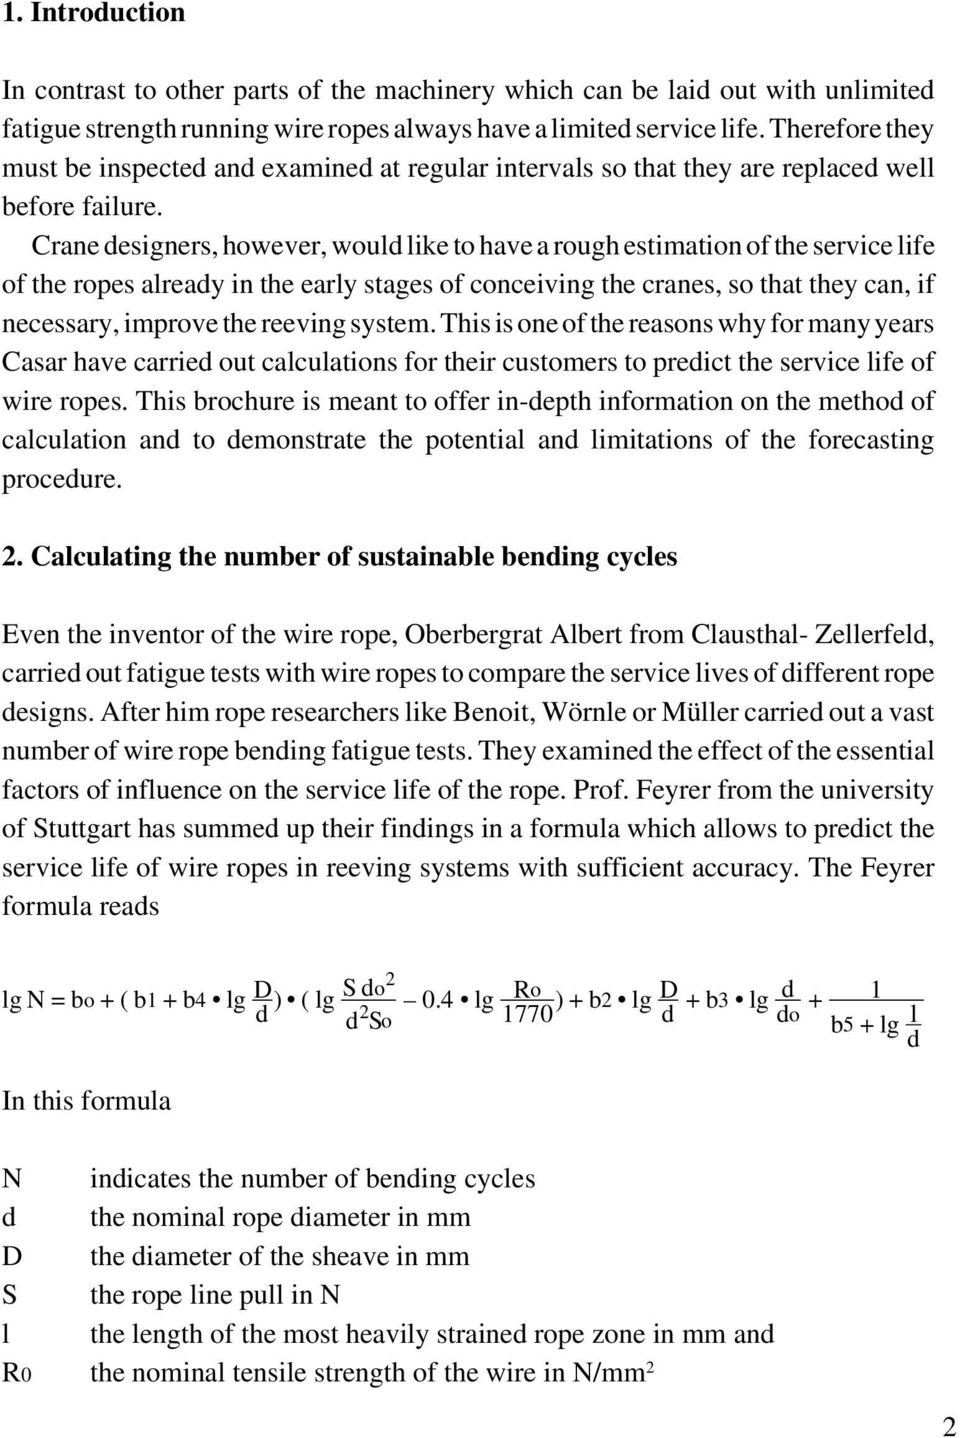 Calculating the service life of running steel wire ropes - PDF